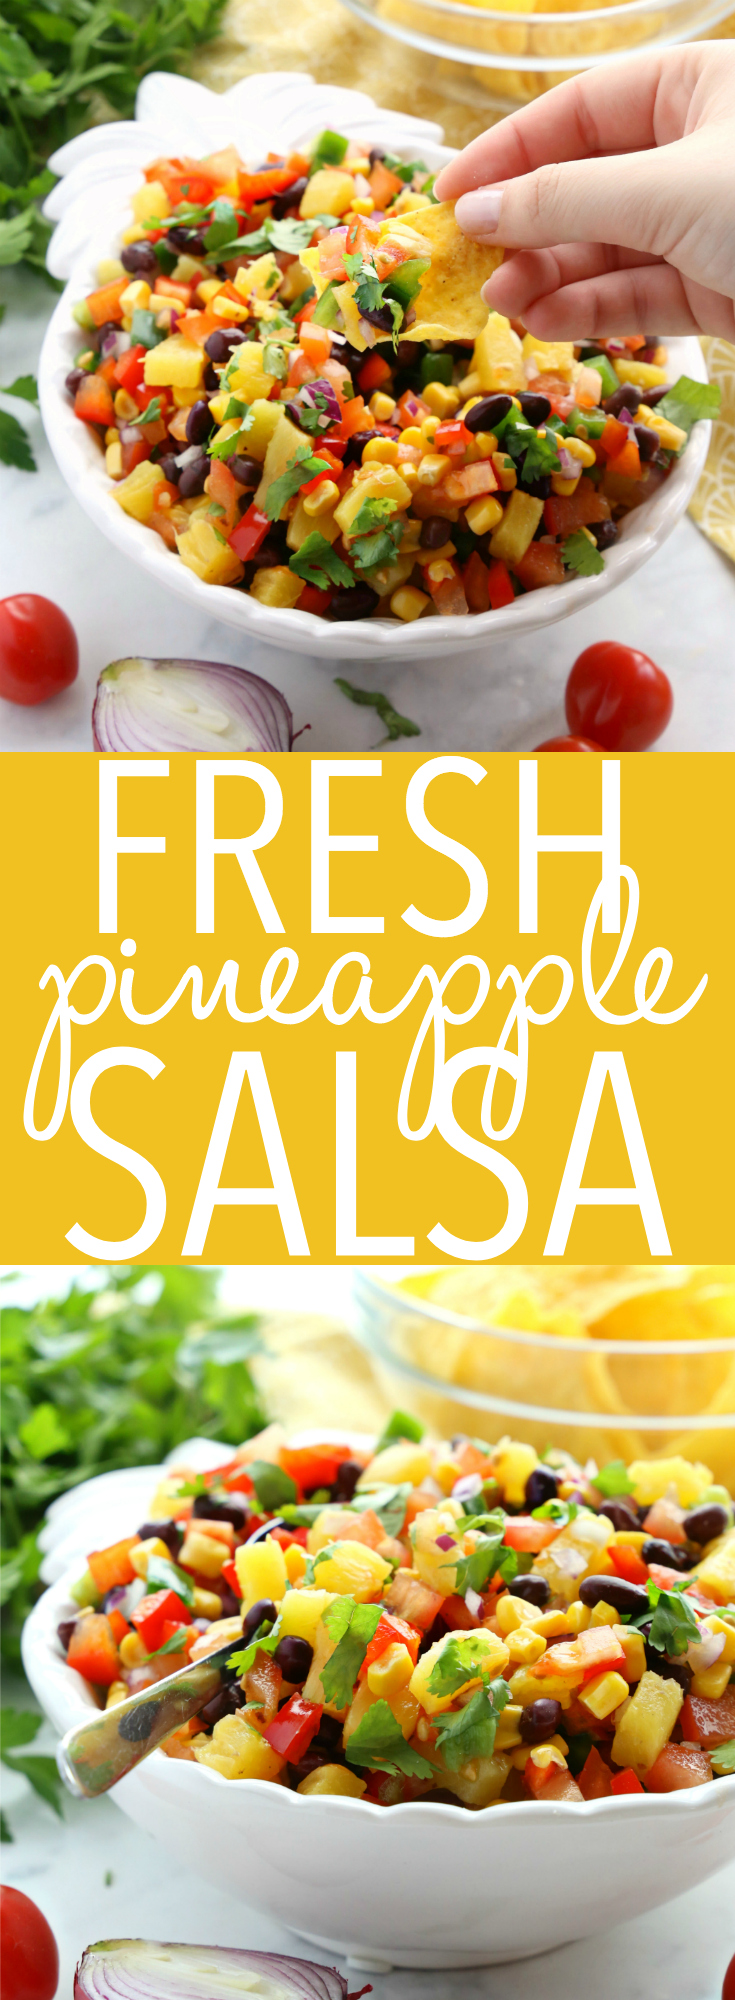 This Fresh Pineapple Salsa is the best ever healthy snack or appetizer packed with fruits and veggies - it's perfect for spring and summer barbecues! Fat free and low in calories! Recipe from thebusybaker.ca! #freshsalsa #easysalsarecipe #pineapplesalsa #fatfreesalsa via @busybakerblog